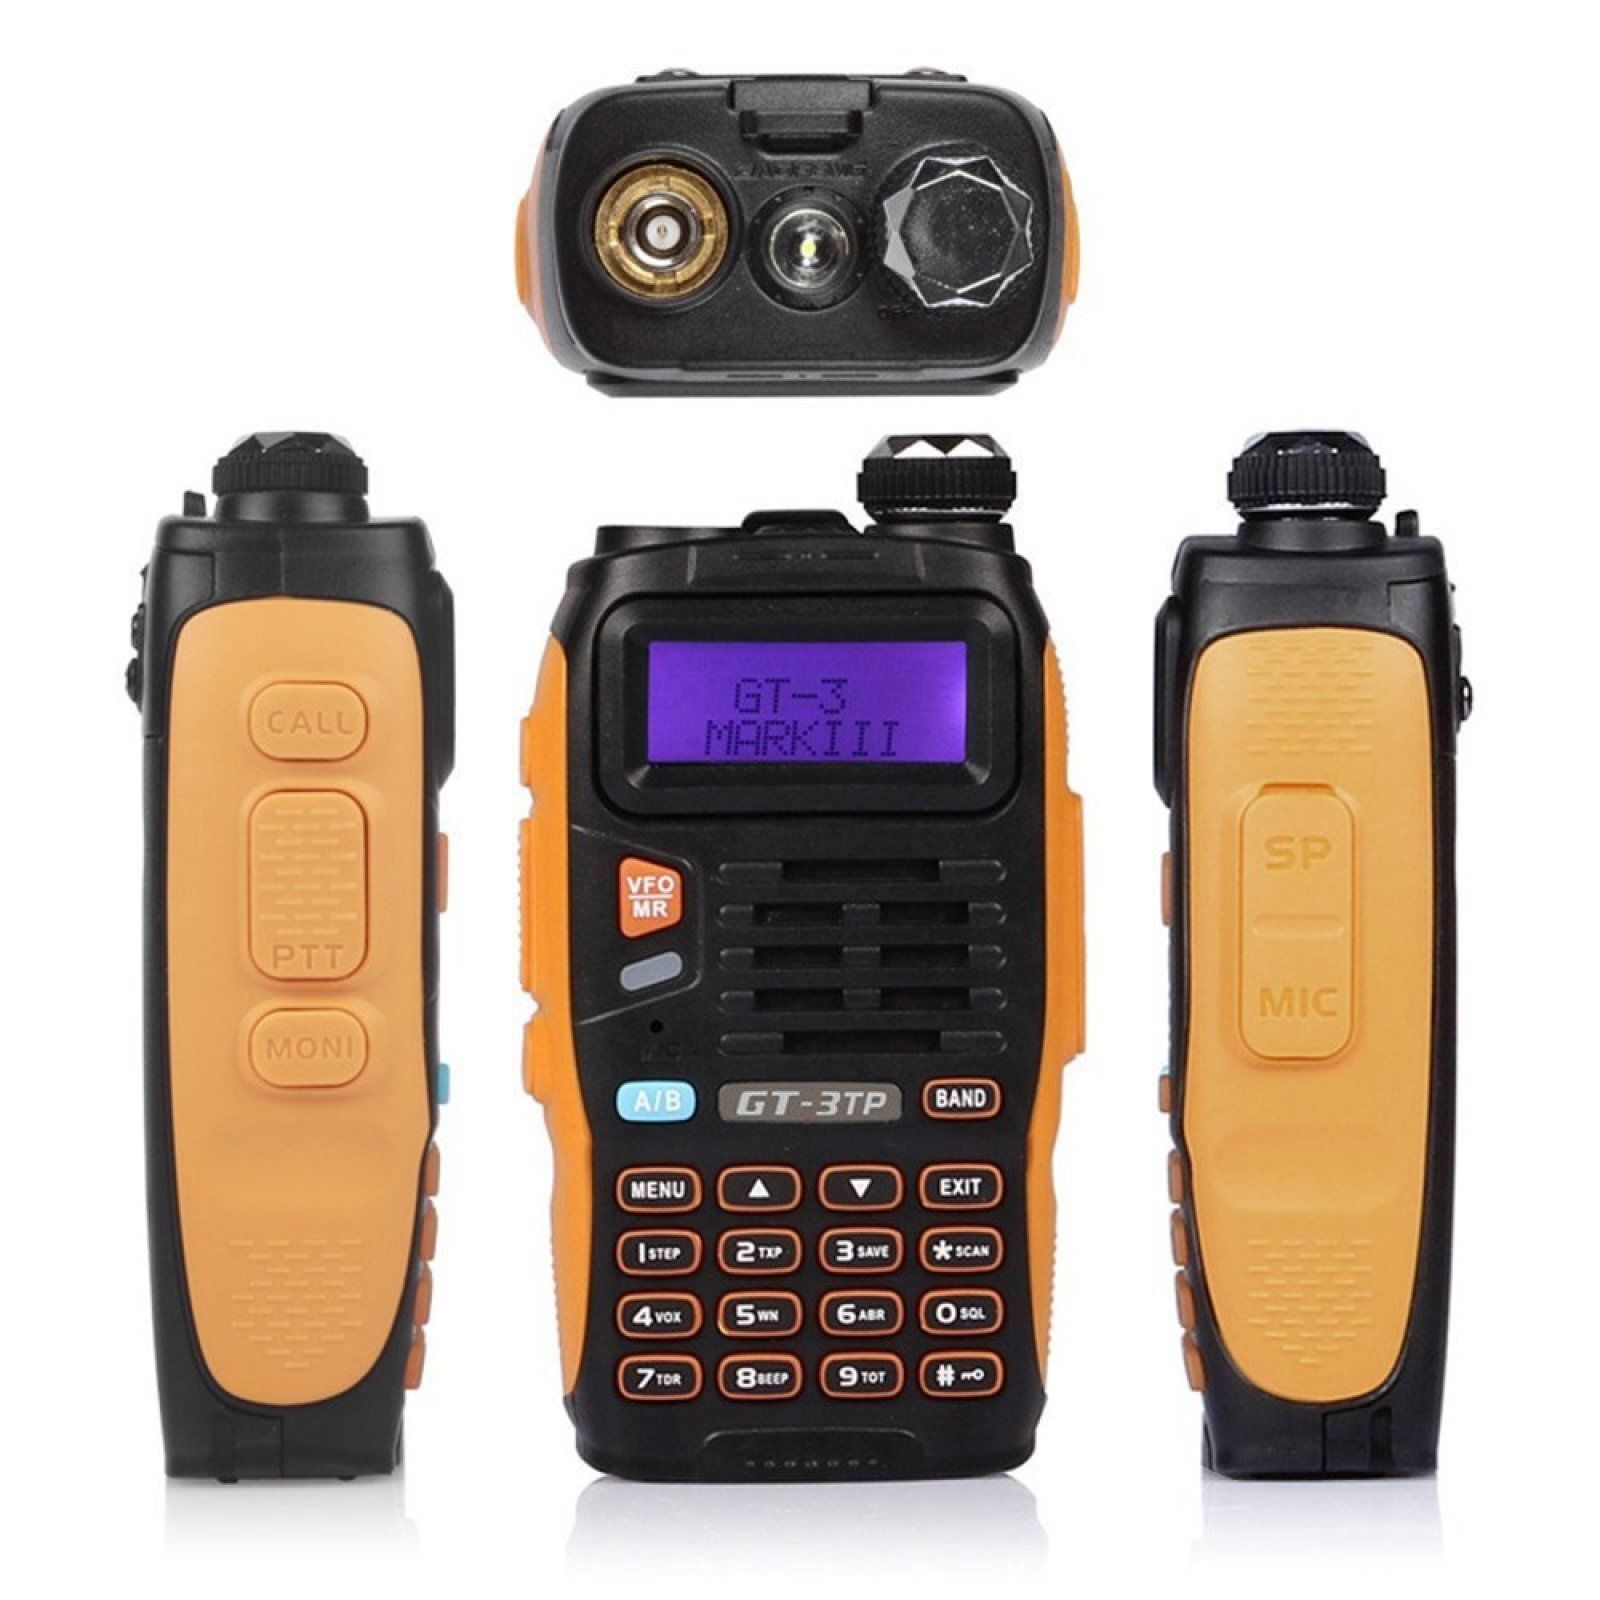 Handheld Police Radio Scanner 2-Way Triple Power Digital Transceiver HAM Antenna